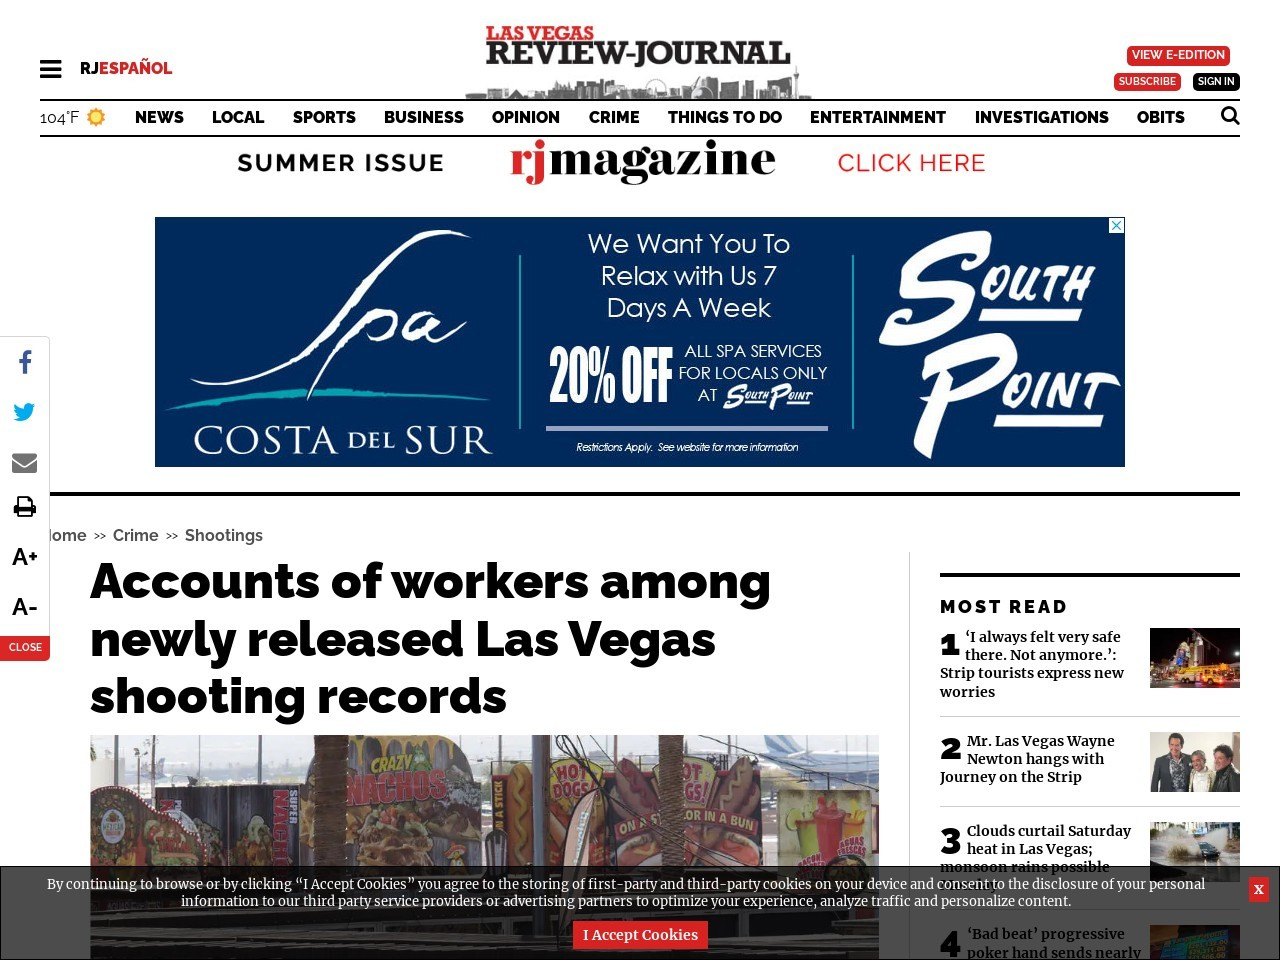 Accounts of workers among newly released Las Vegas shooting records